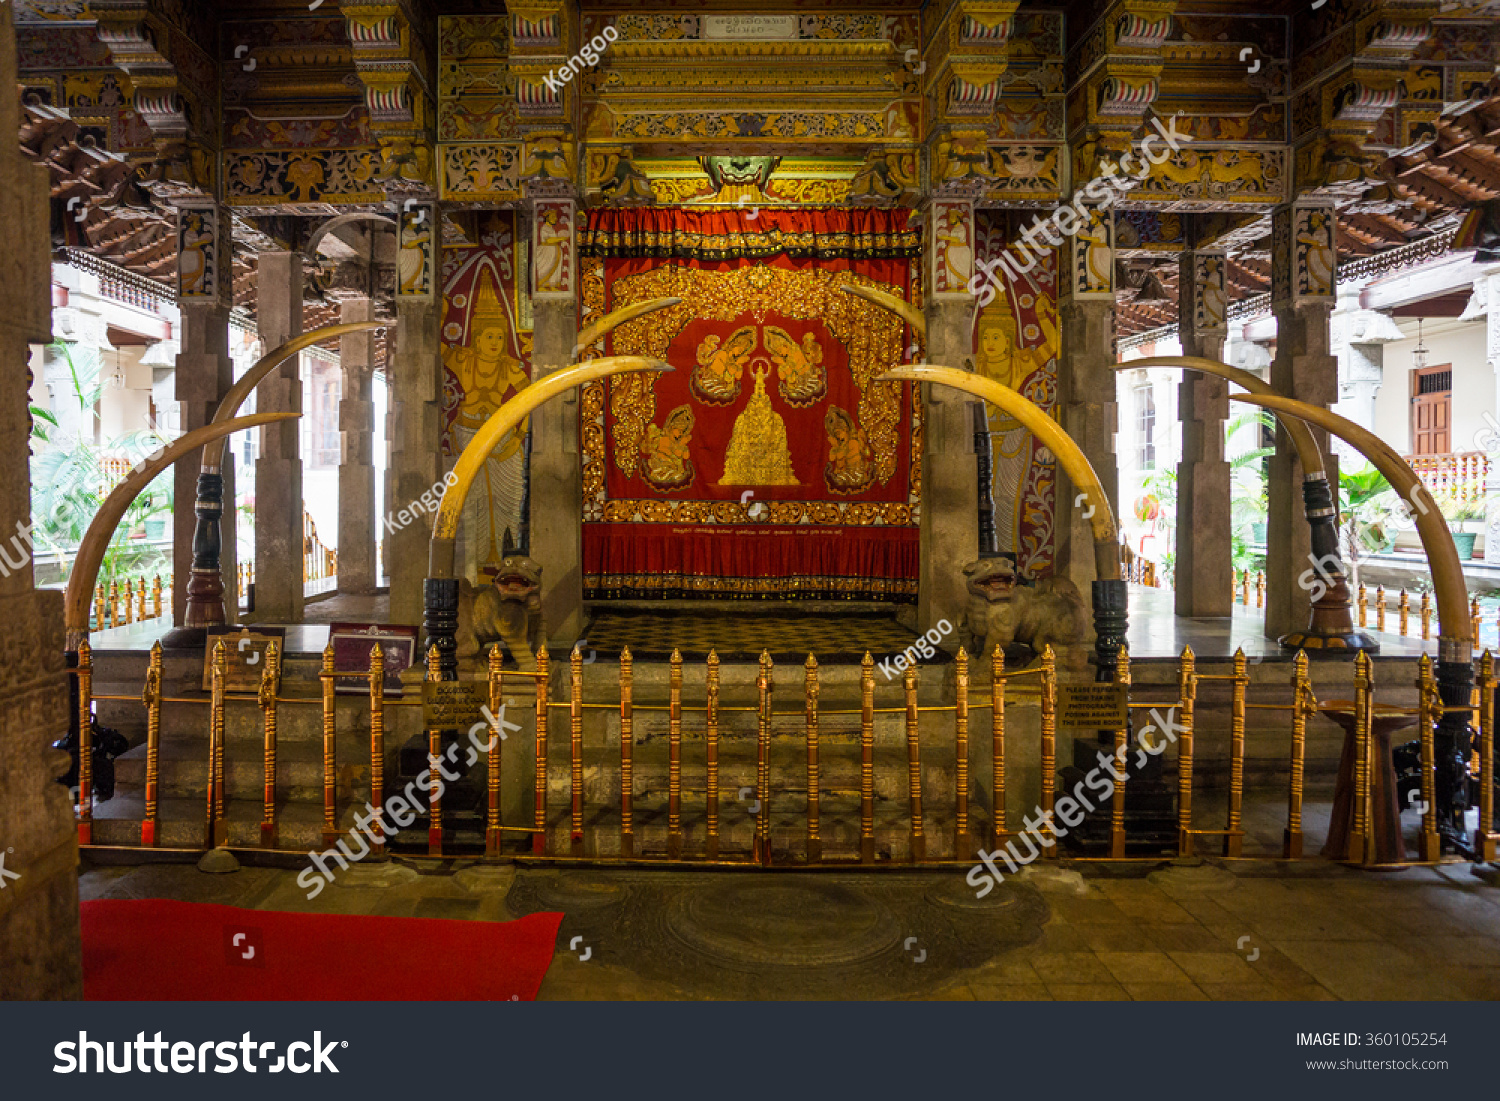 Sri Lanka Kandy August 16 2015 The Tooth of Buddah Temple The Temple of the Tooth Relic Territory Of The Temple The inside view